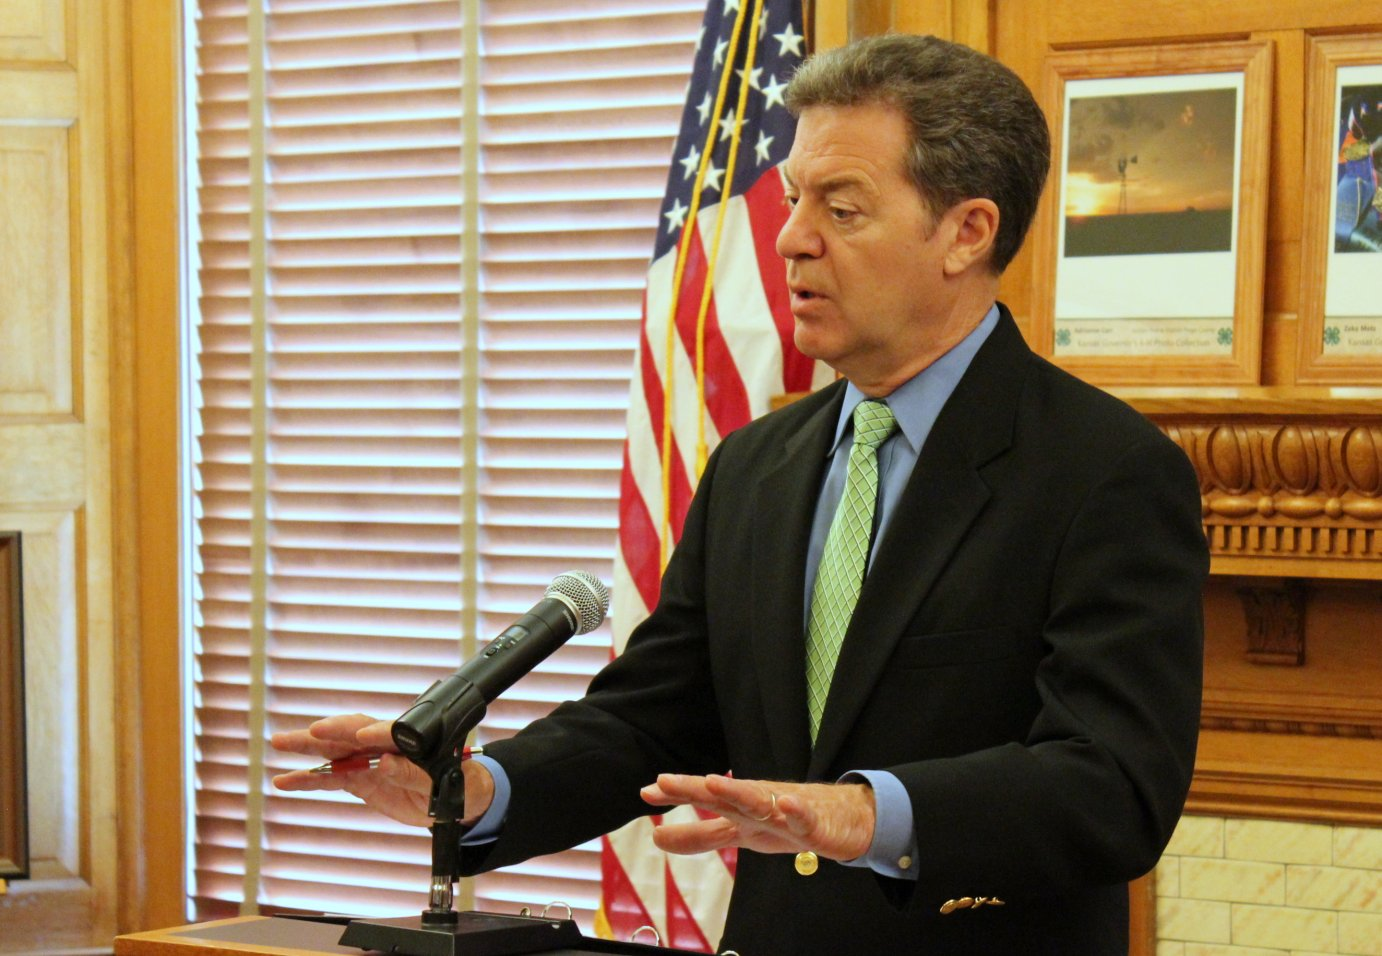 Brownback speaking earlier this year. (Photo by Stephen Koranda)